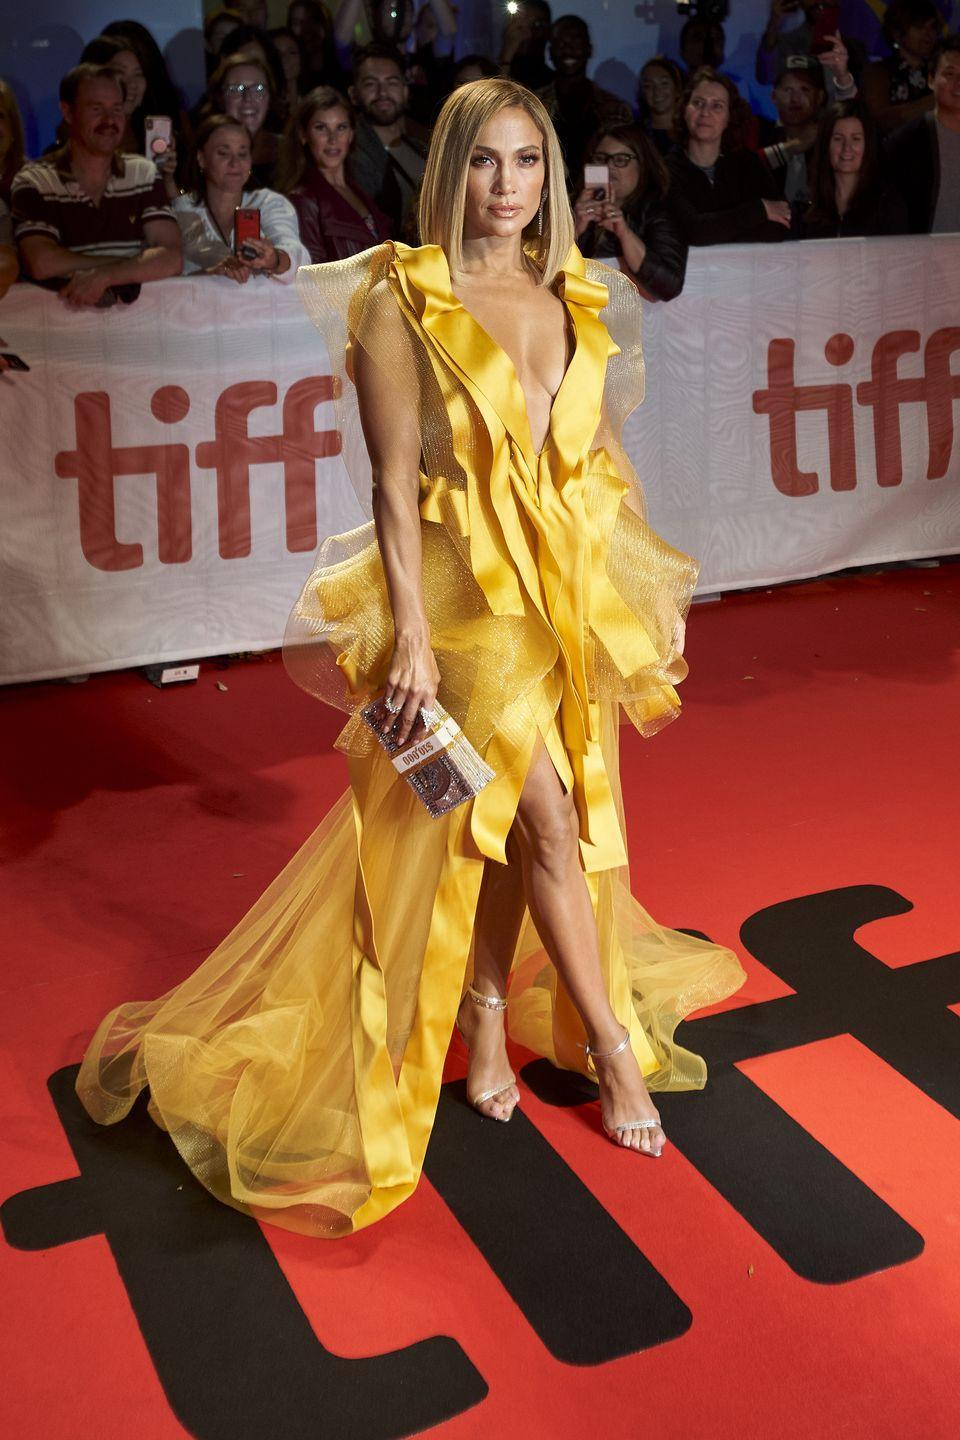 <p>For the Hustlers premiere at TIFF, Lopez - who also serves as an executive producer for the film - wore a yellow ruffle and net gown by Maison Yeya.</p>